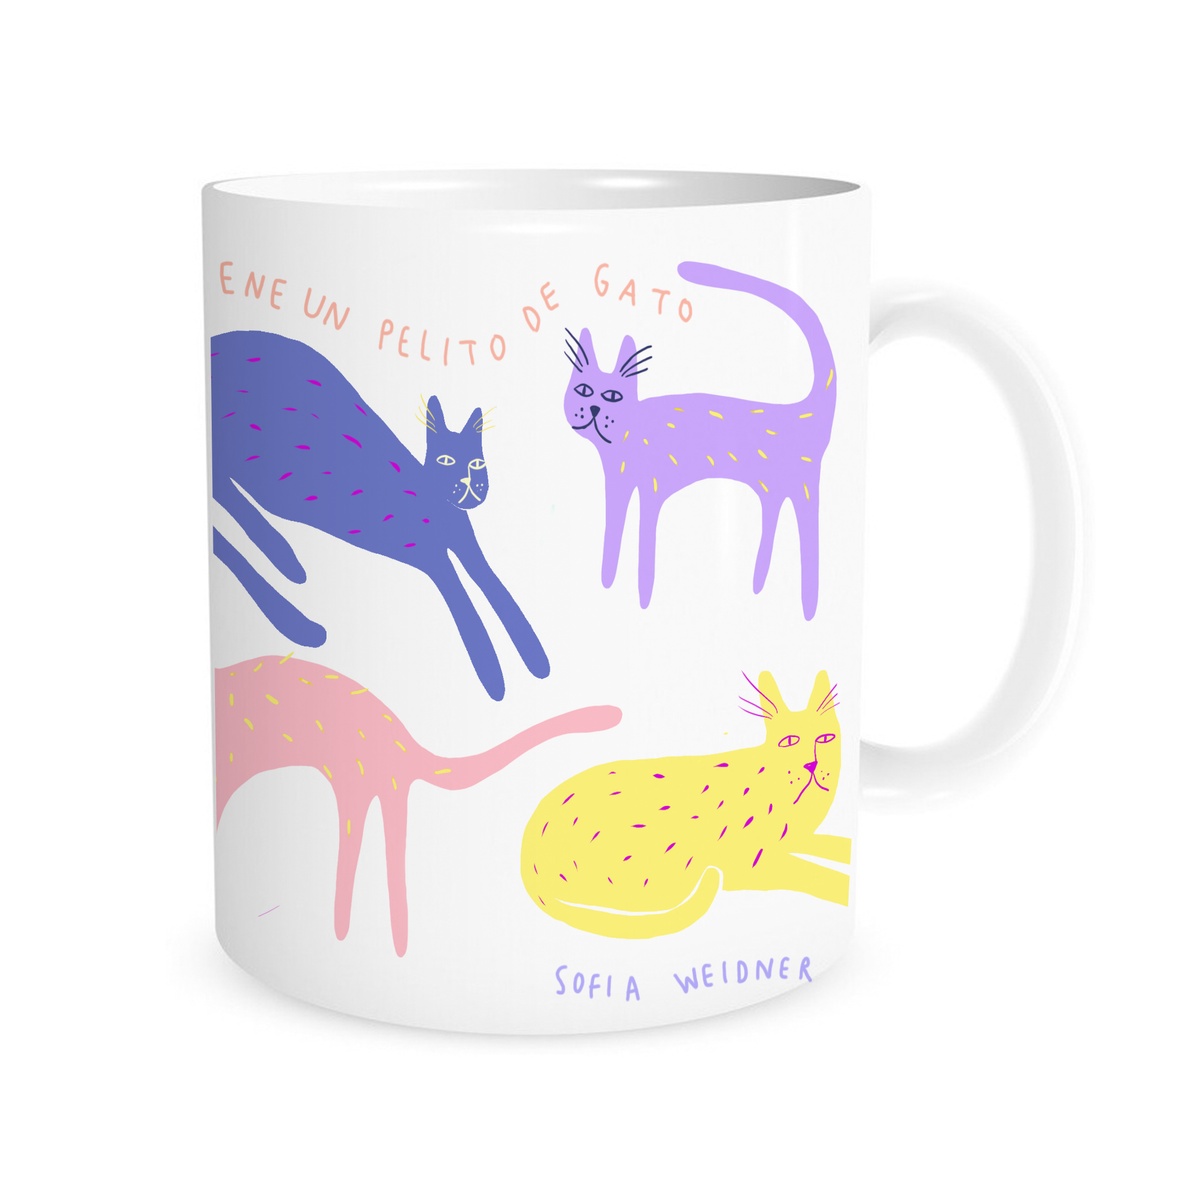 Image of Taza de gatos